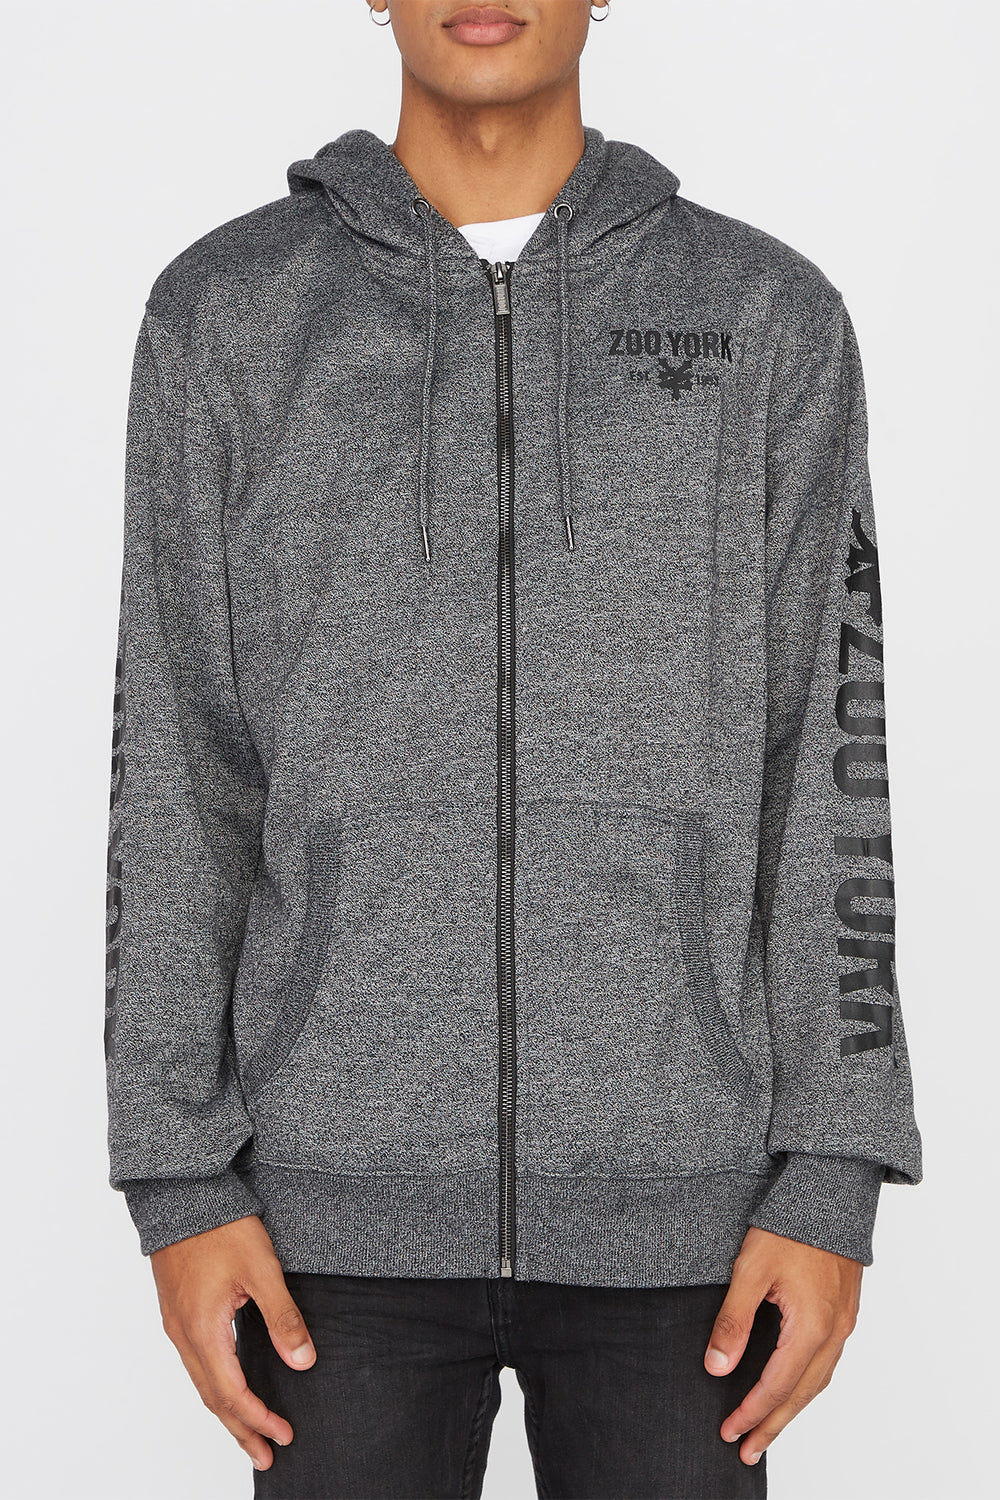 Zoo York Mens Zip-Up Hoodie Charcoal